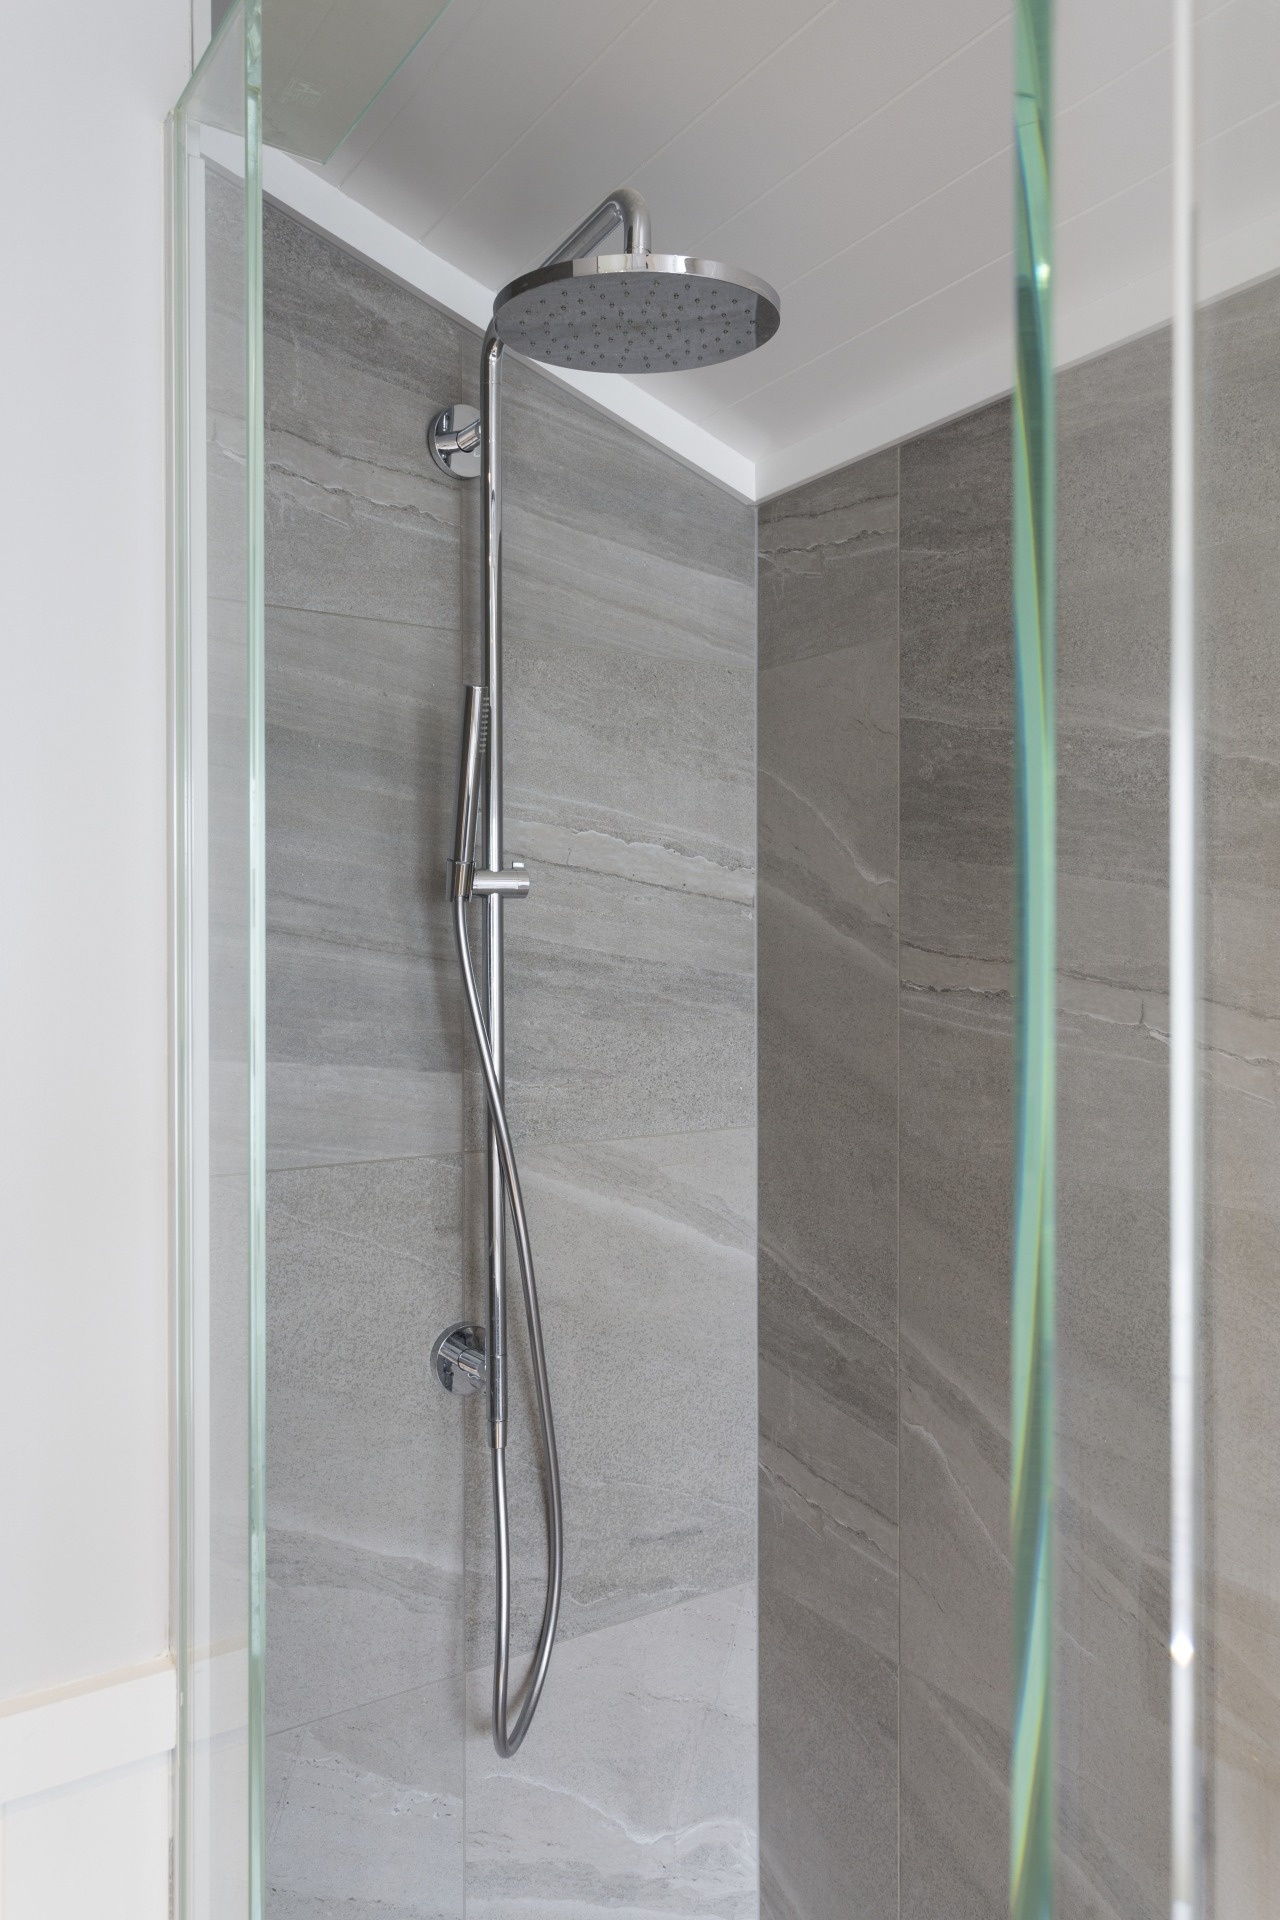 With wall tiles to match the bathrooms floor angle, bathroom, plumbing fixture, product design, shower, tap, gray